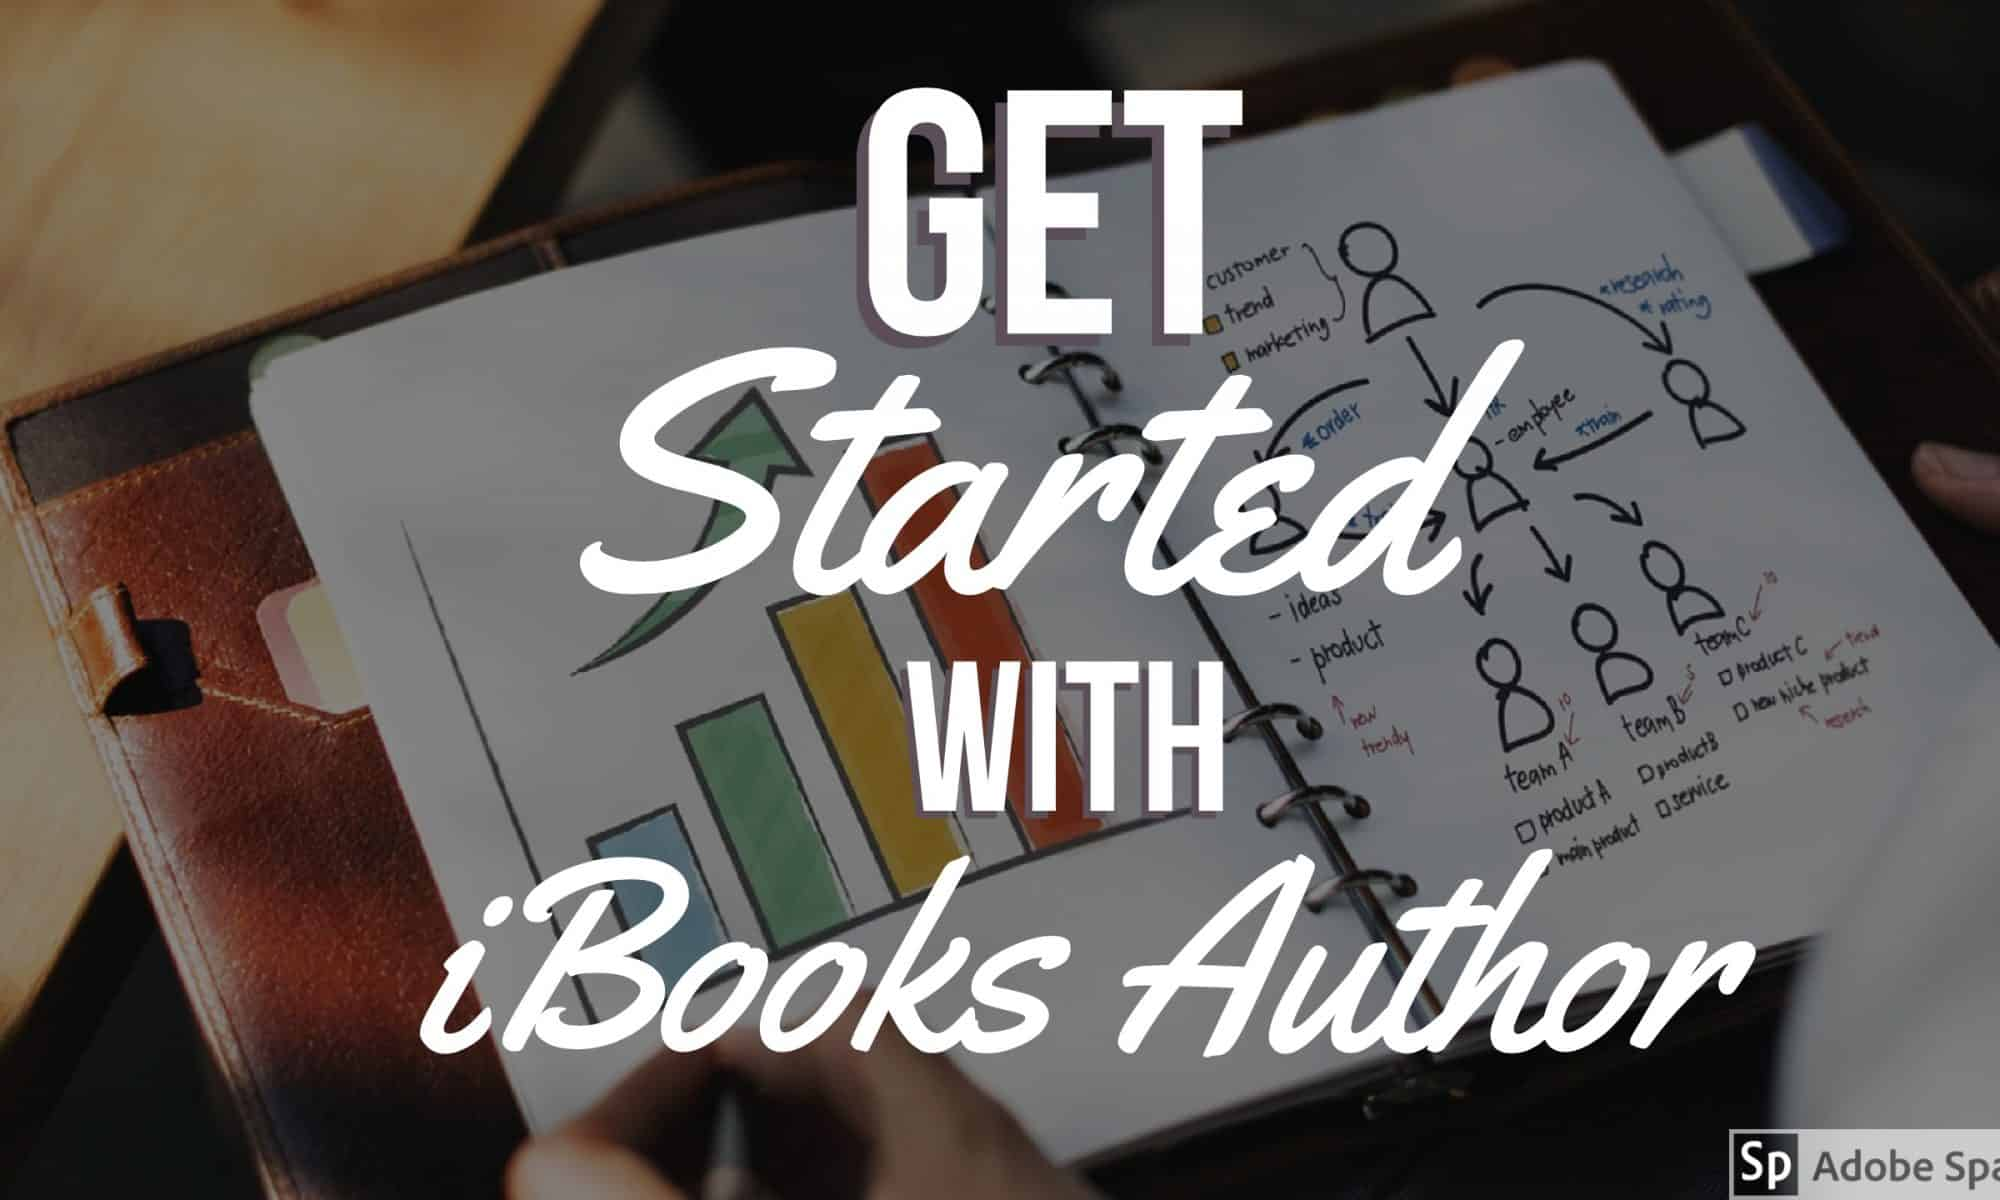 Get started with iBooks Author